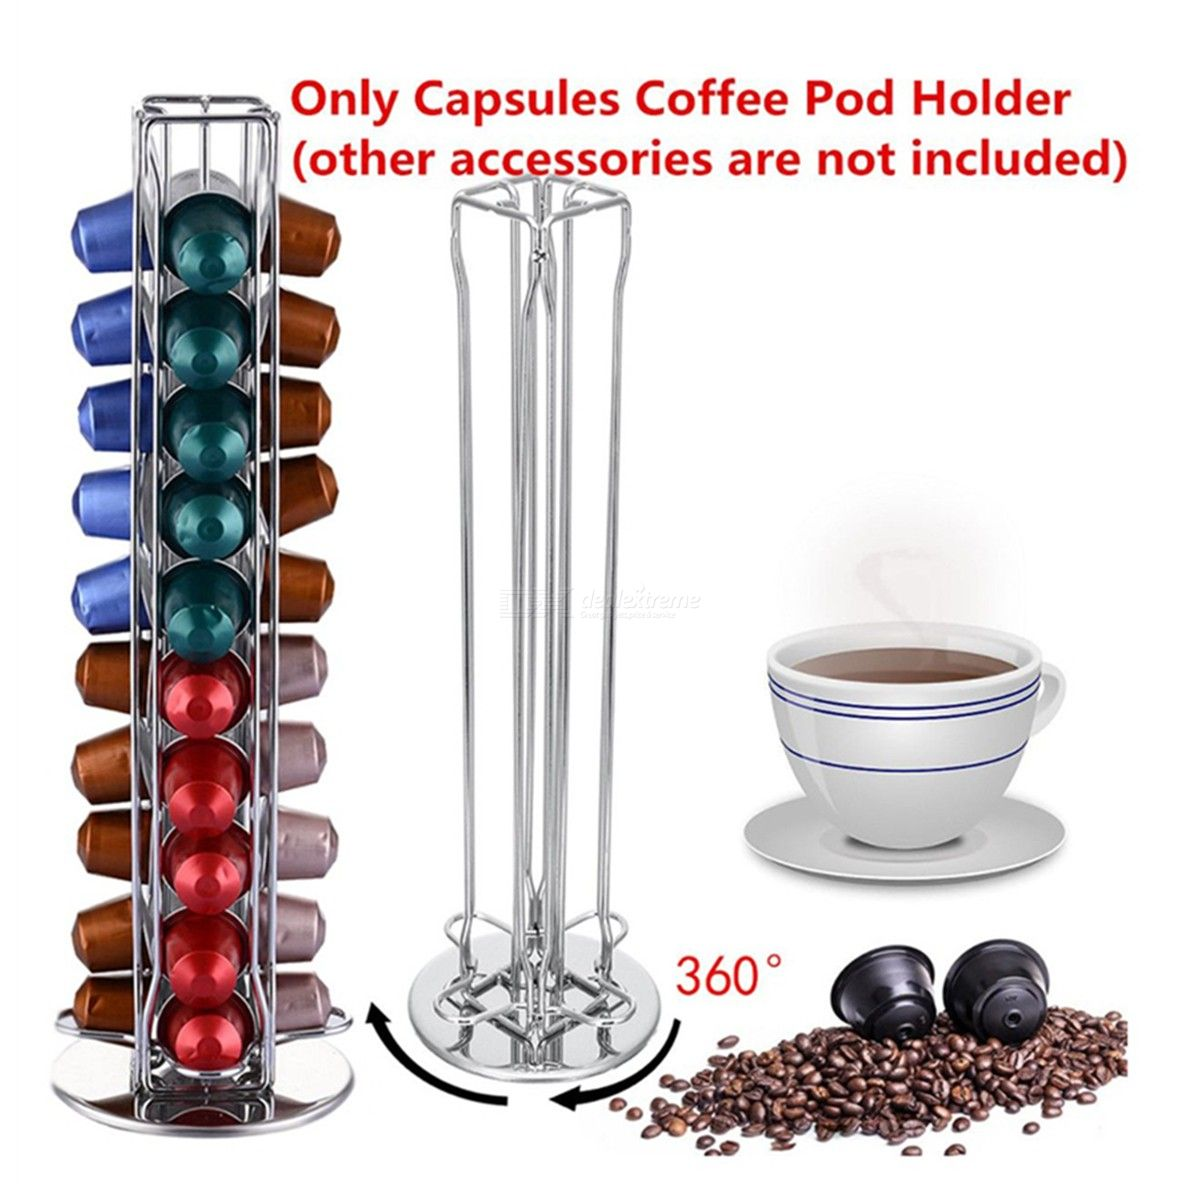 360 Degree Rotating 40 Capsule Coffee Pod Holder Tower Stand Rack Fits For Nespresso Capsule